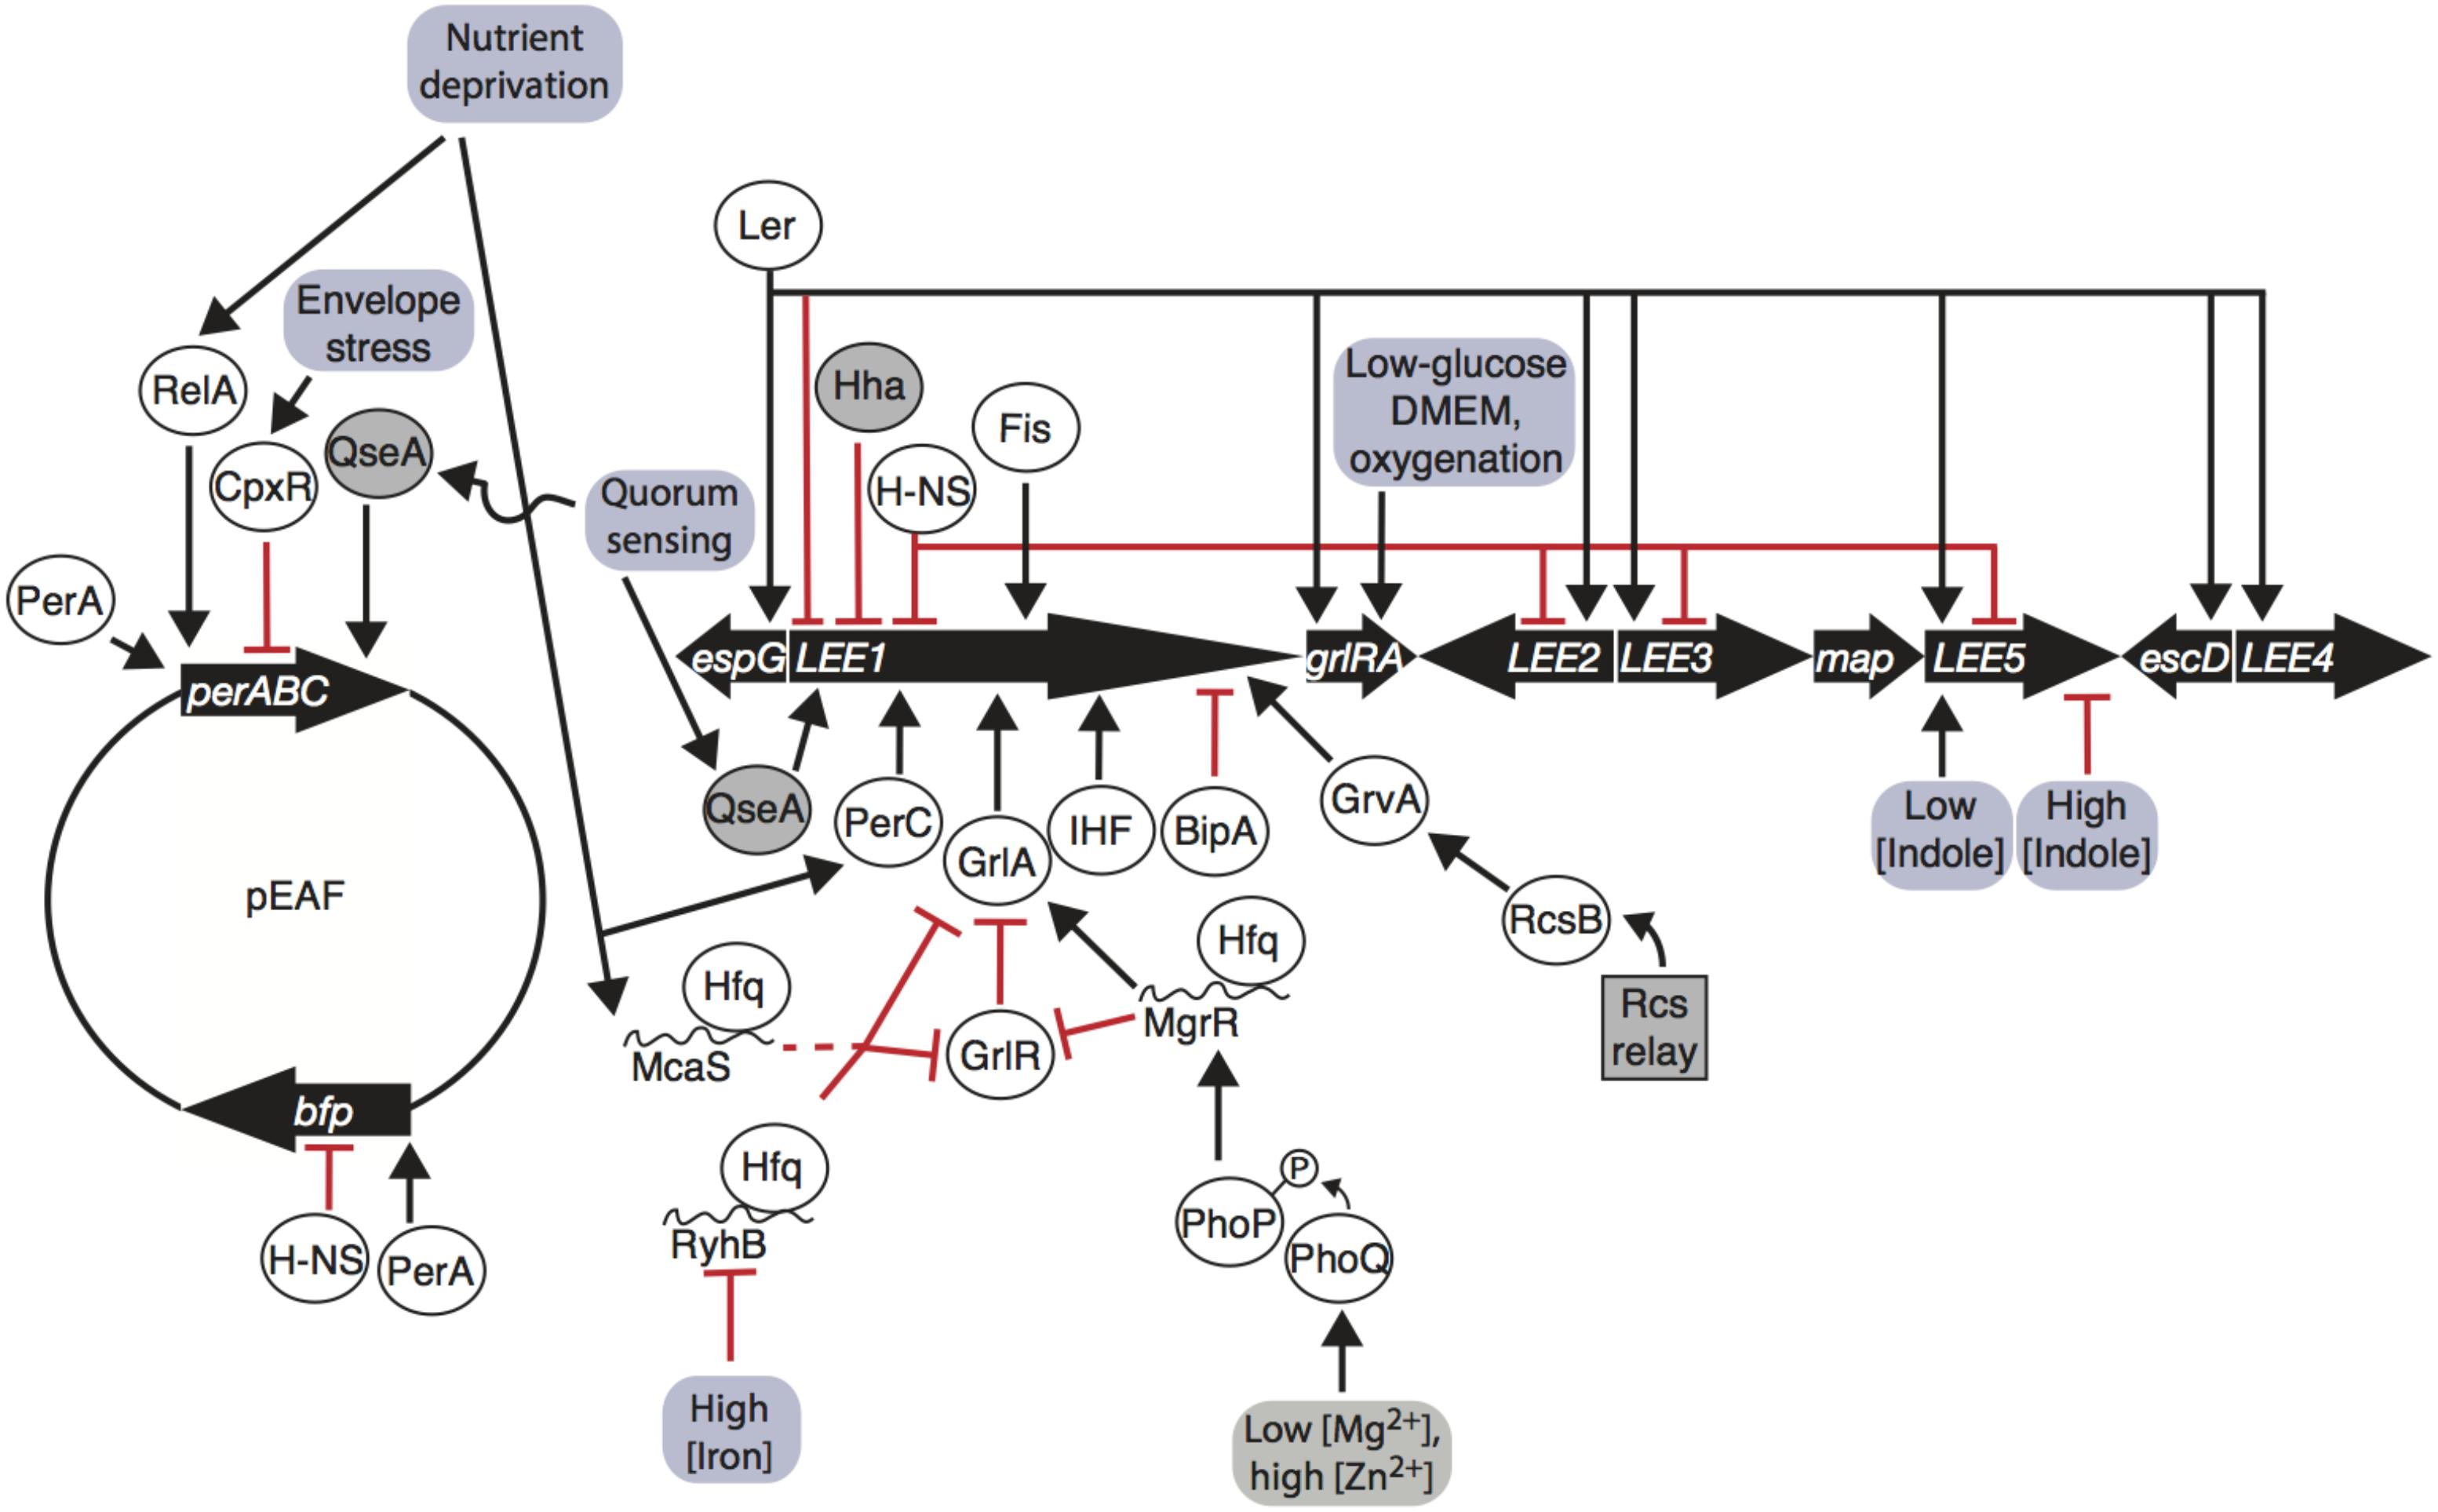 Frontiers | Environment Controls LEE Regulation in Enteropathogenic